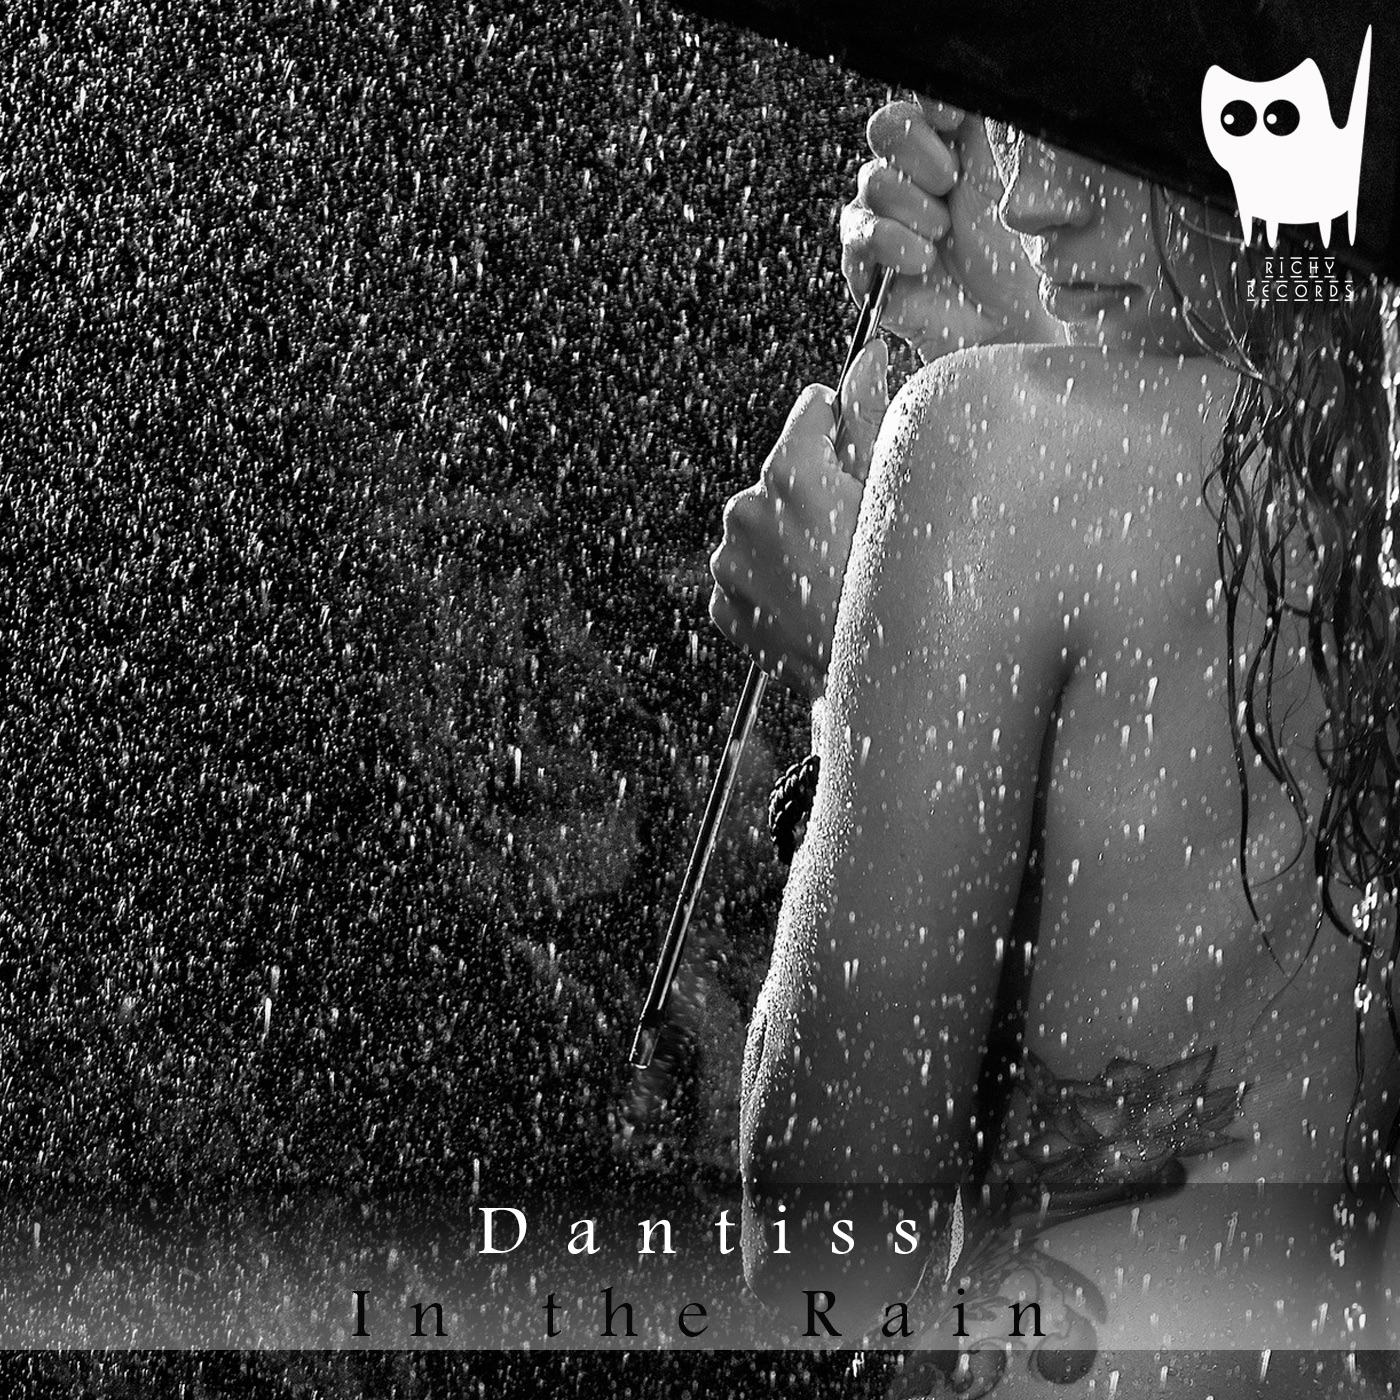 MP3 Songs Online:♫ In the Rain - Dantiss album In the Rain - Single. Electronic,Music listen to music online free without downloading.